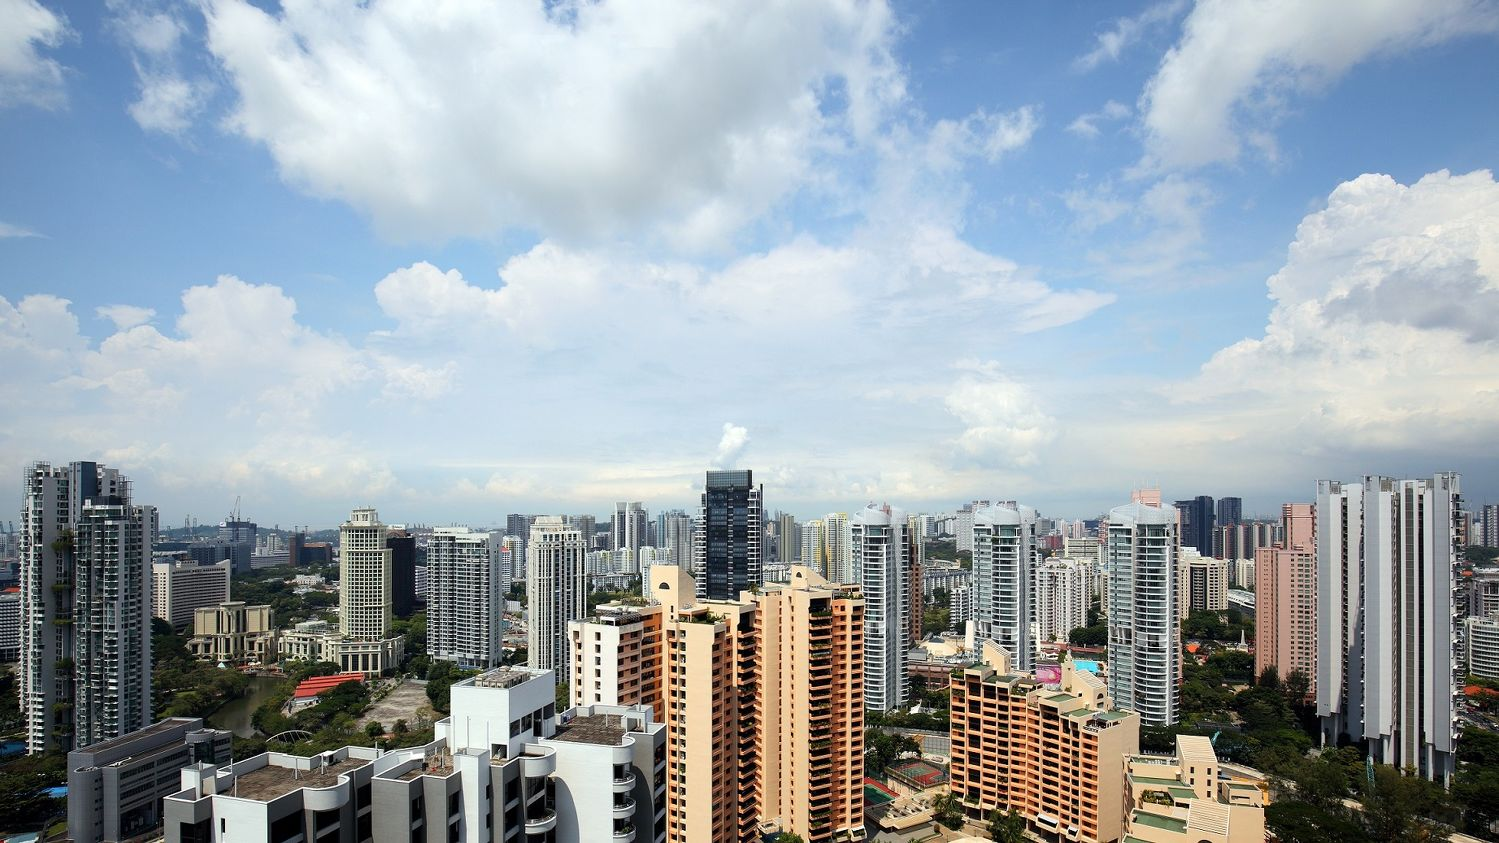 EDGEPROP SINGAPORE - Urban Redevelopment Authority private residential property price index corrected 1% in 1Q2020 and according to the flash estimates, is expected to correct by another 1.1% in 2Q2020 (Photo: Samuel Isaac Chua) - EDGEPROP SINGAPORE